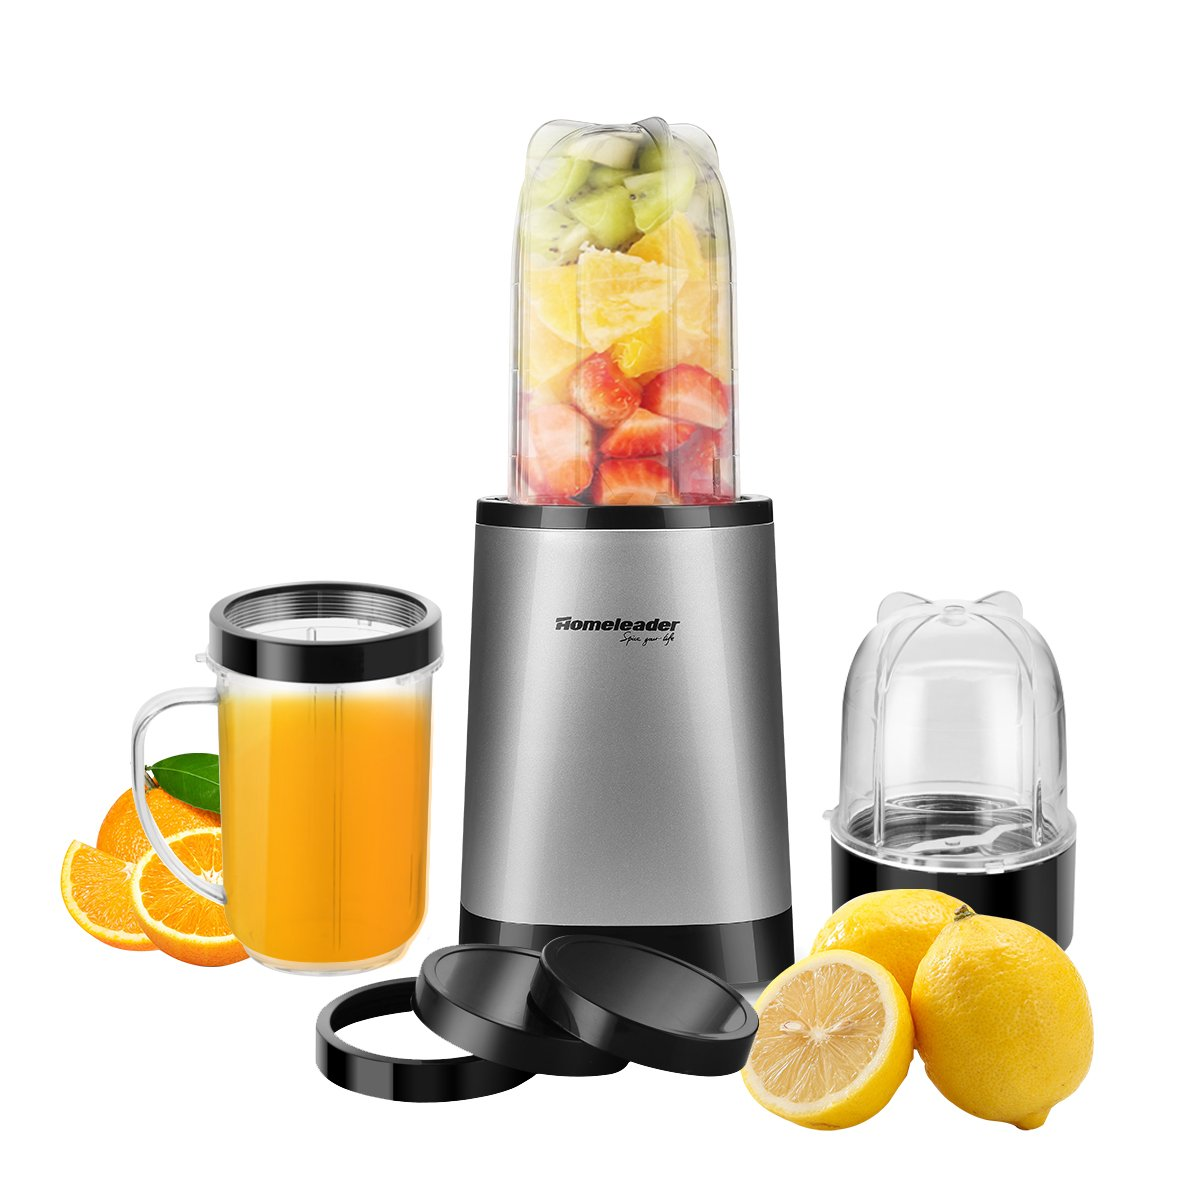 Homeleader 9-Piece Personal Blender, 26000 RPM High Speed Blender for Shakes and Smoothies,Mini Blender/Mixer